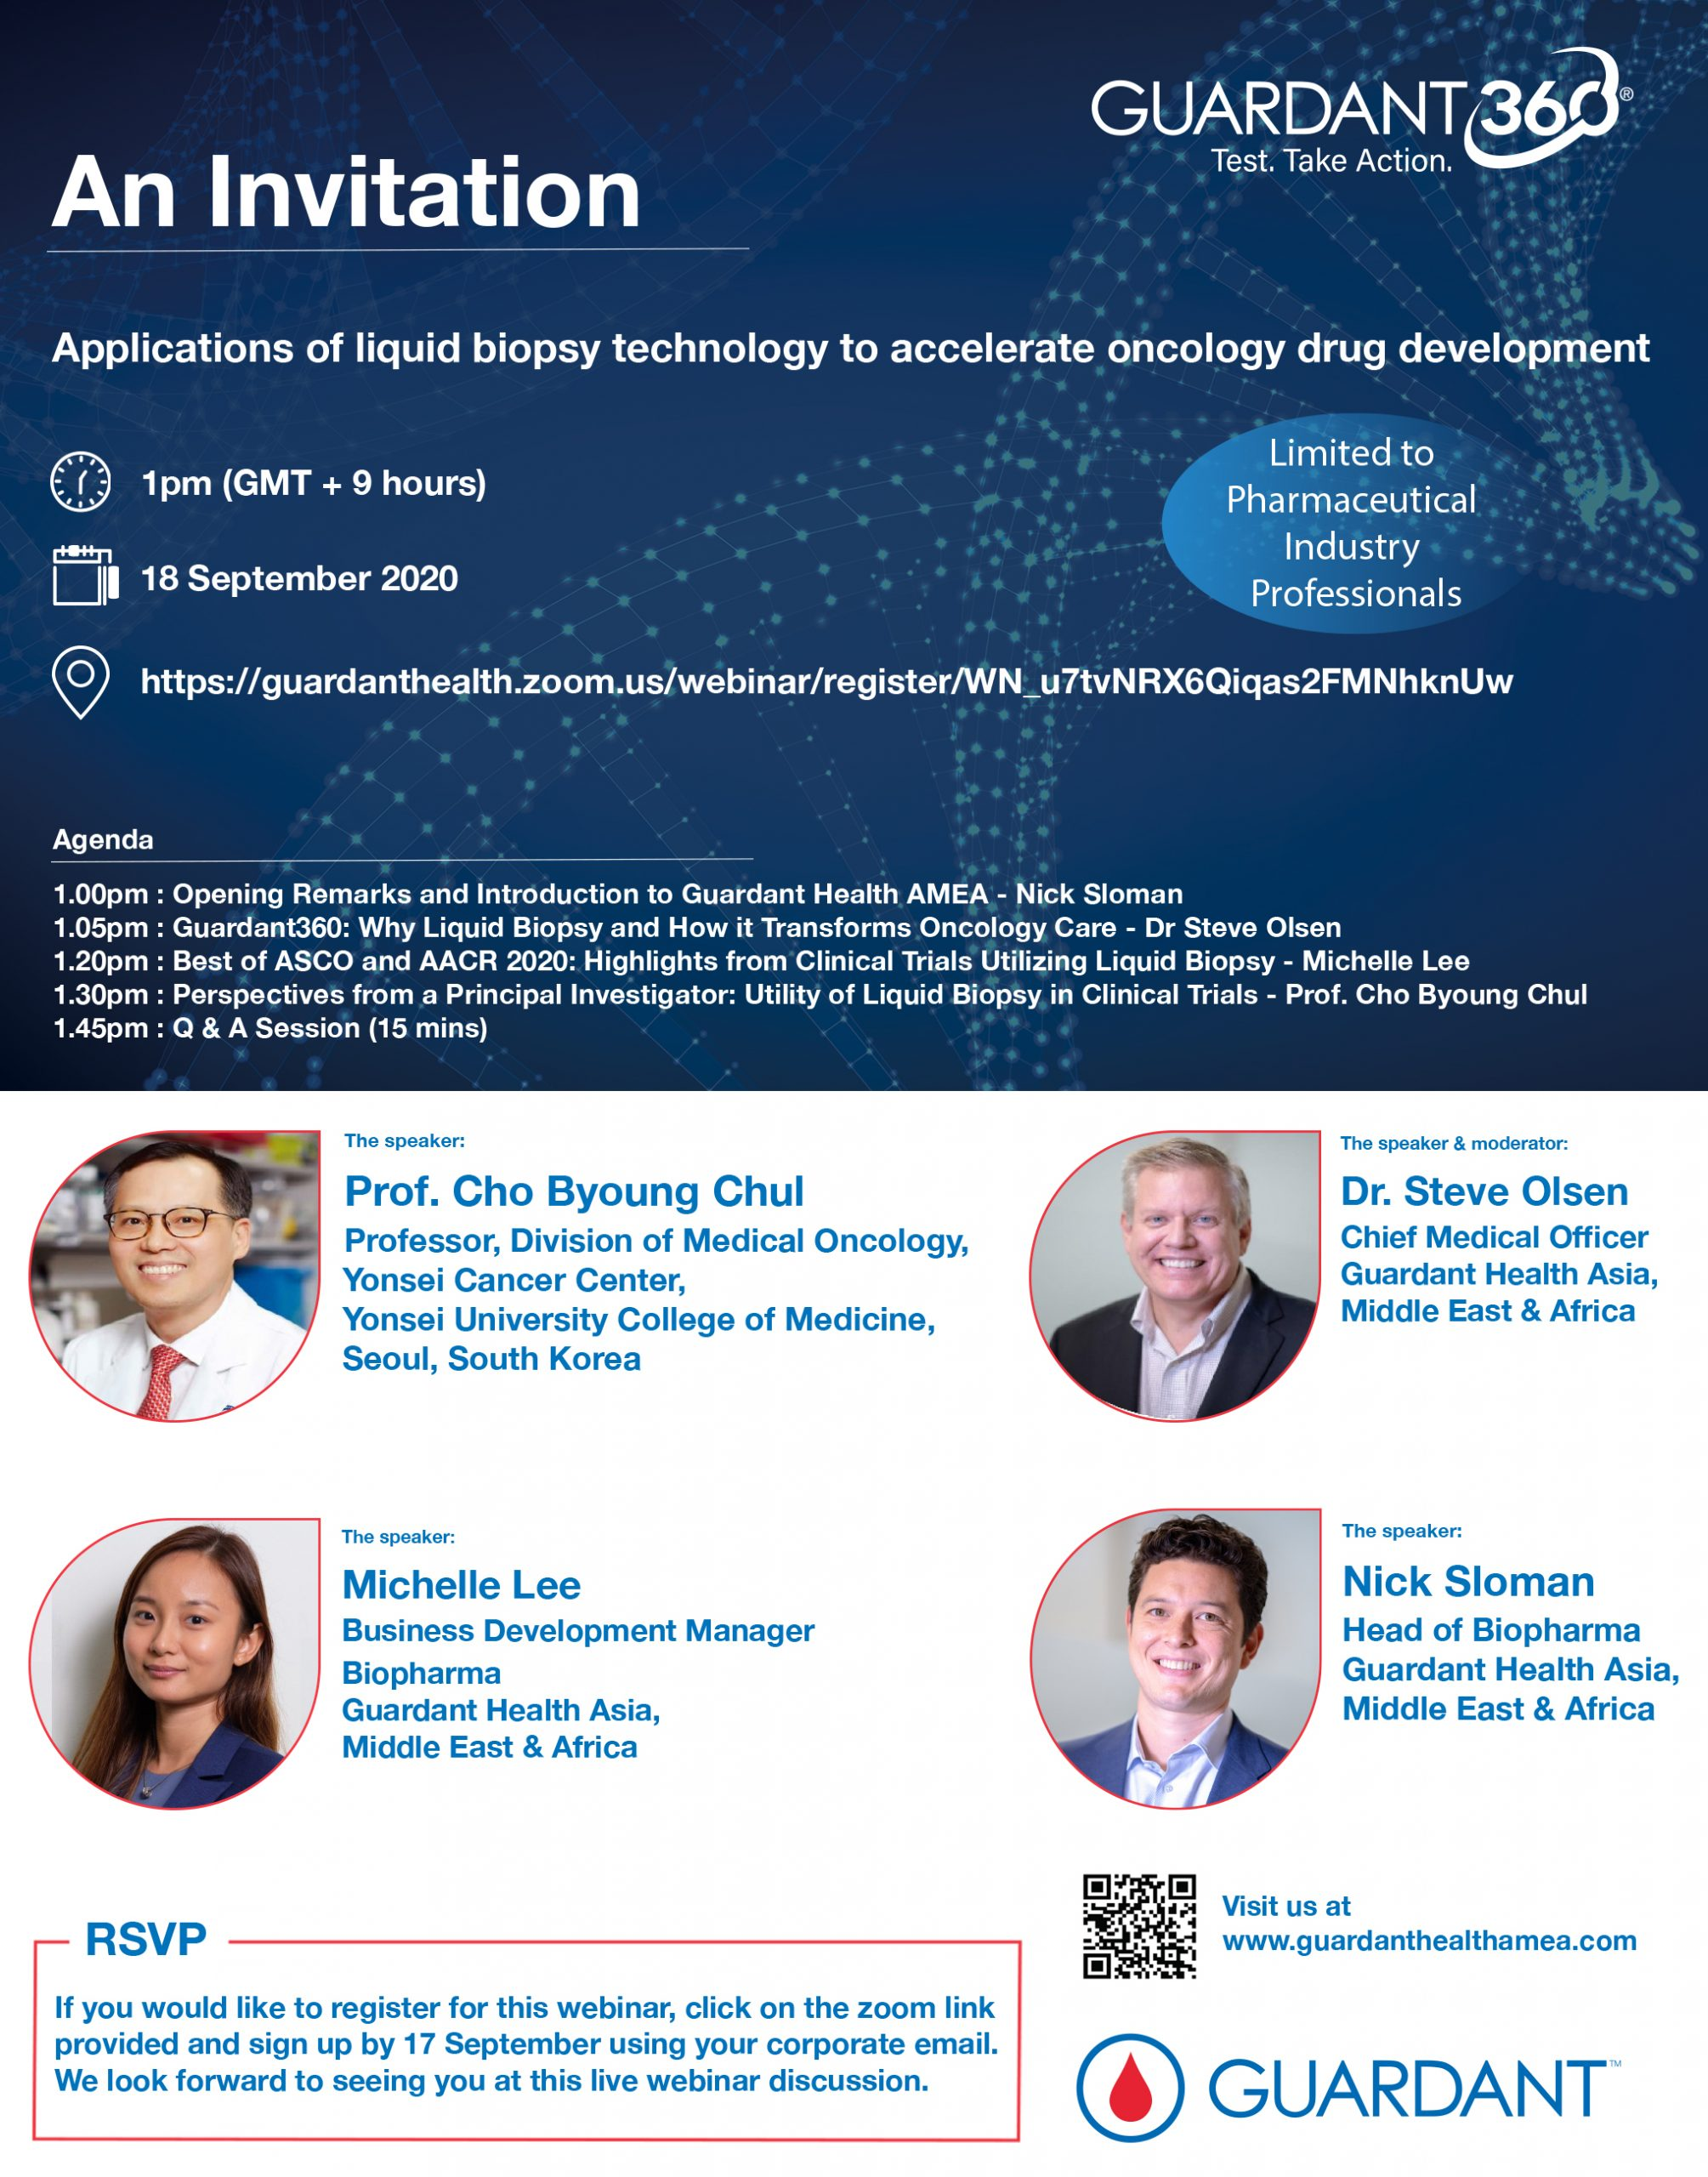 Applications of liquid biopsy technology to accelerate oncology drug development (Webinar)